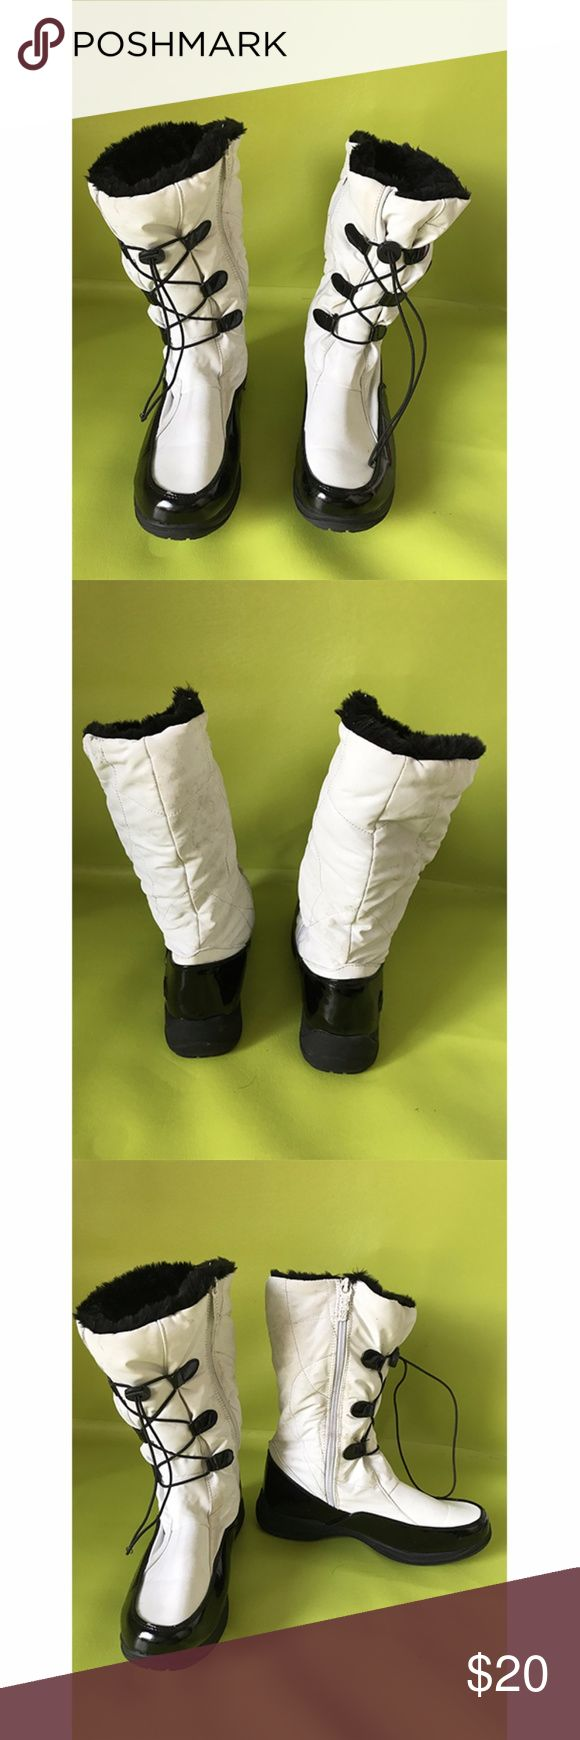 Totes High Laced Black White Womens Winter Boots 8 Round Toe, Flat, Ankle High, Faux Fur, Laced Up, Black White Womens Winter Snow Boot   Free shipping on orders over $75 Totes Shoes Winter & Rain Boots